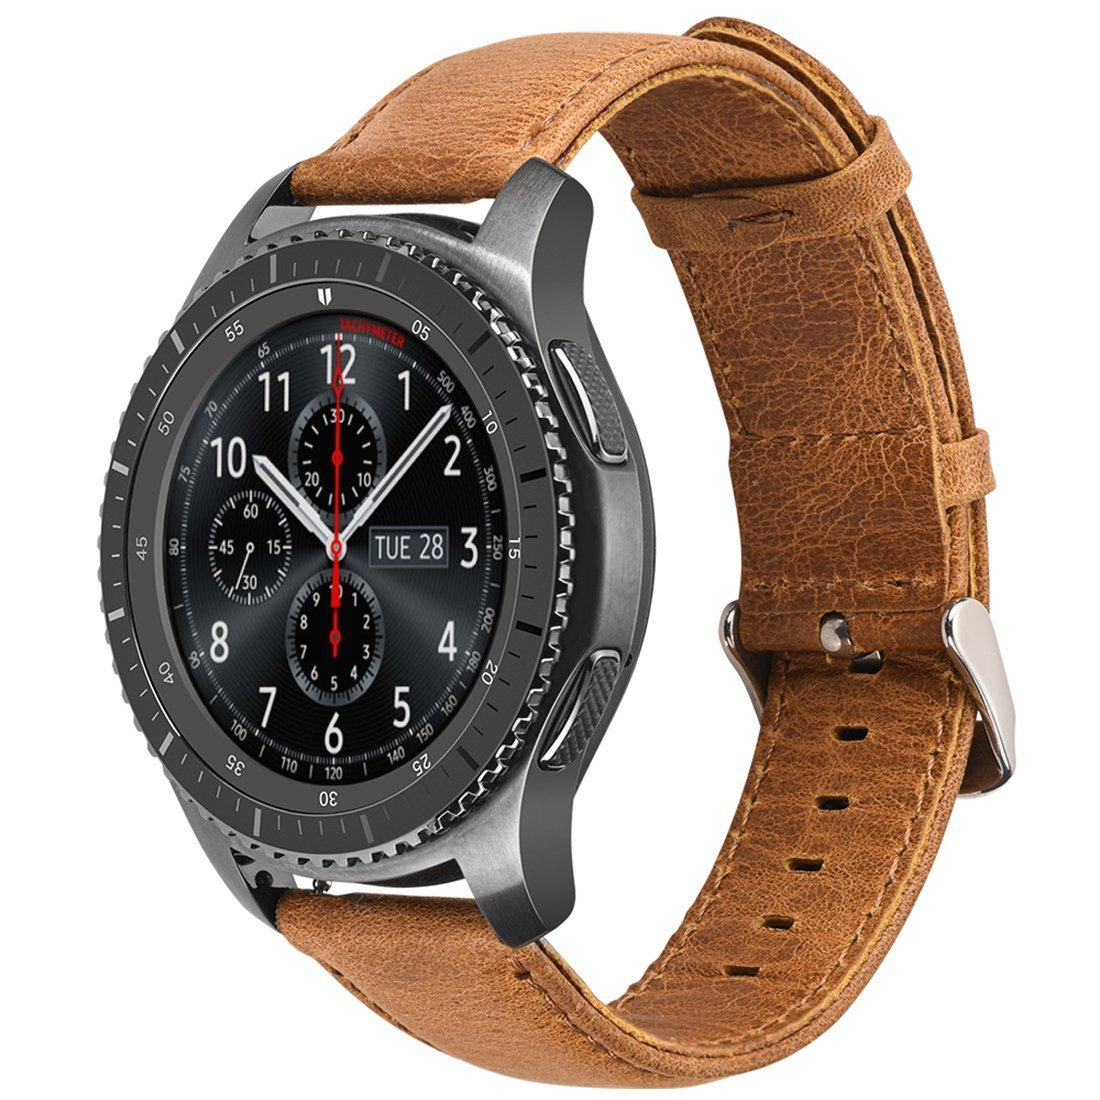 HOCO Replacement Bands for Samsung Gear S3 in Pakistan. Available in Milanese Loop, 3 Pointers & Leather Variants at Best Prices